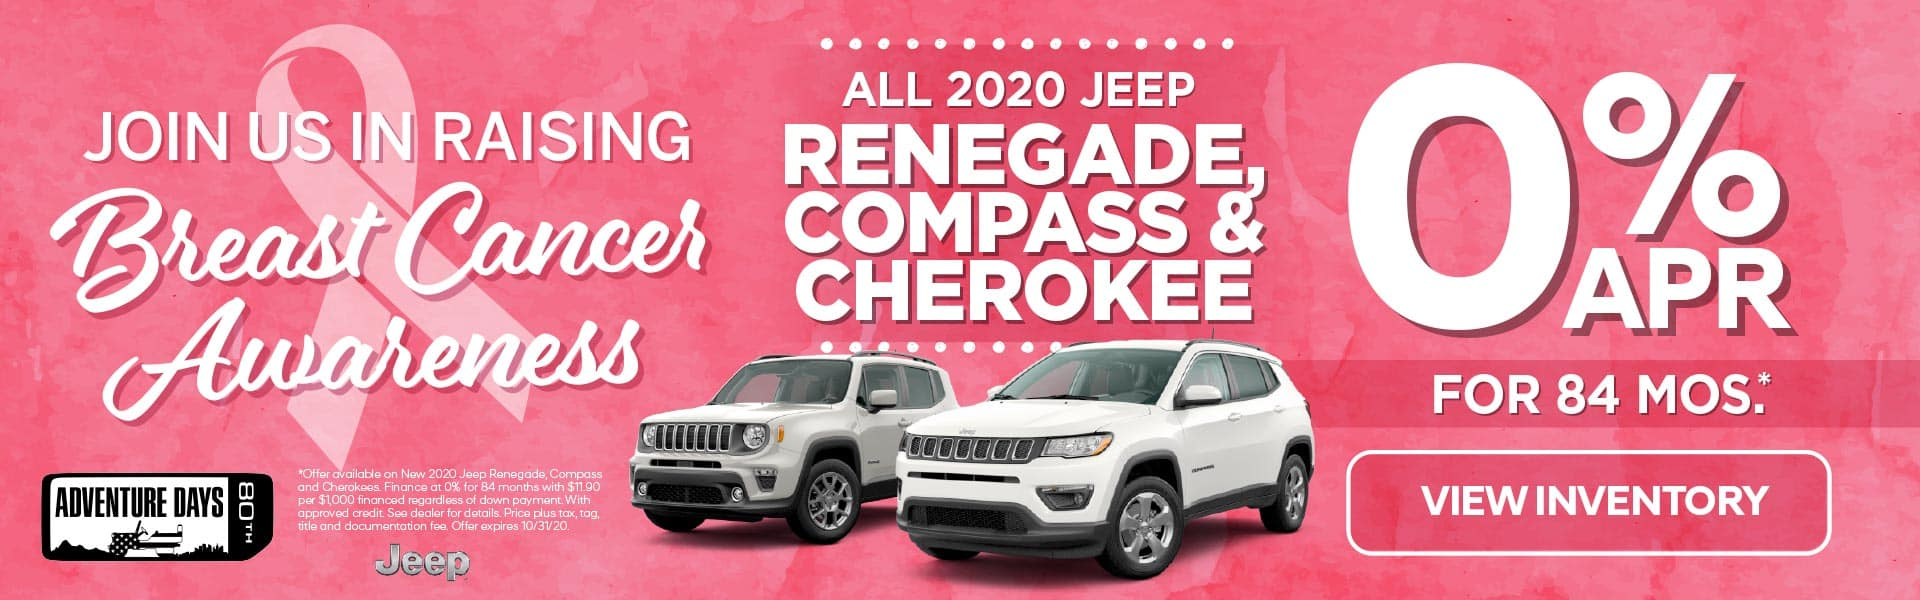 All 2020 Jeep Renegades, Compass', and Cherokees 0% for 84 months